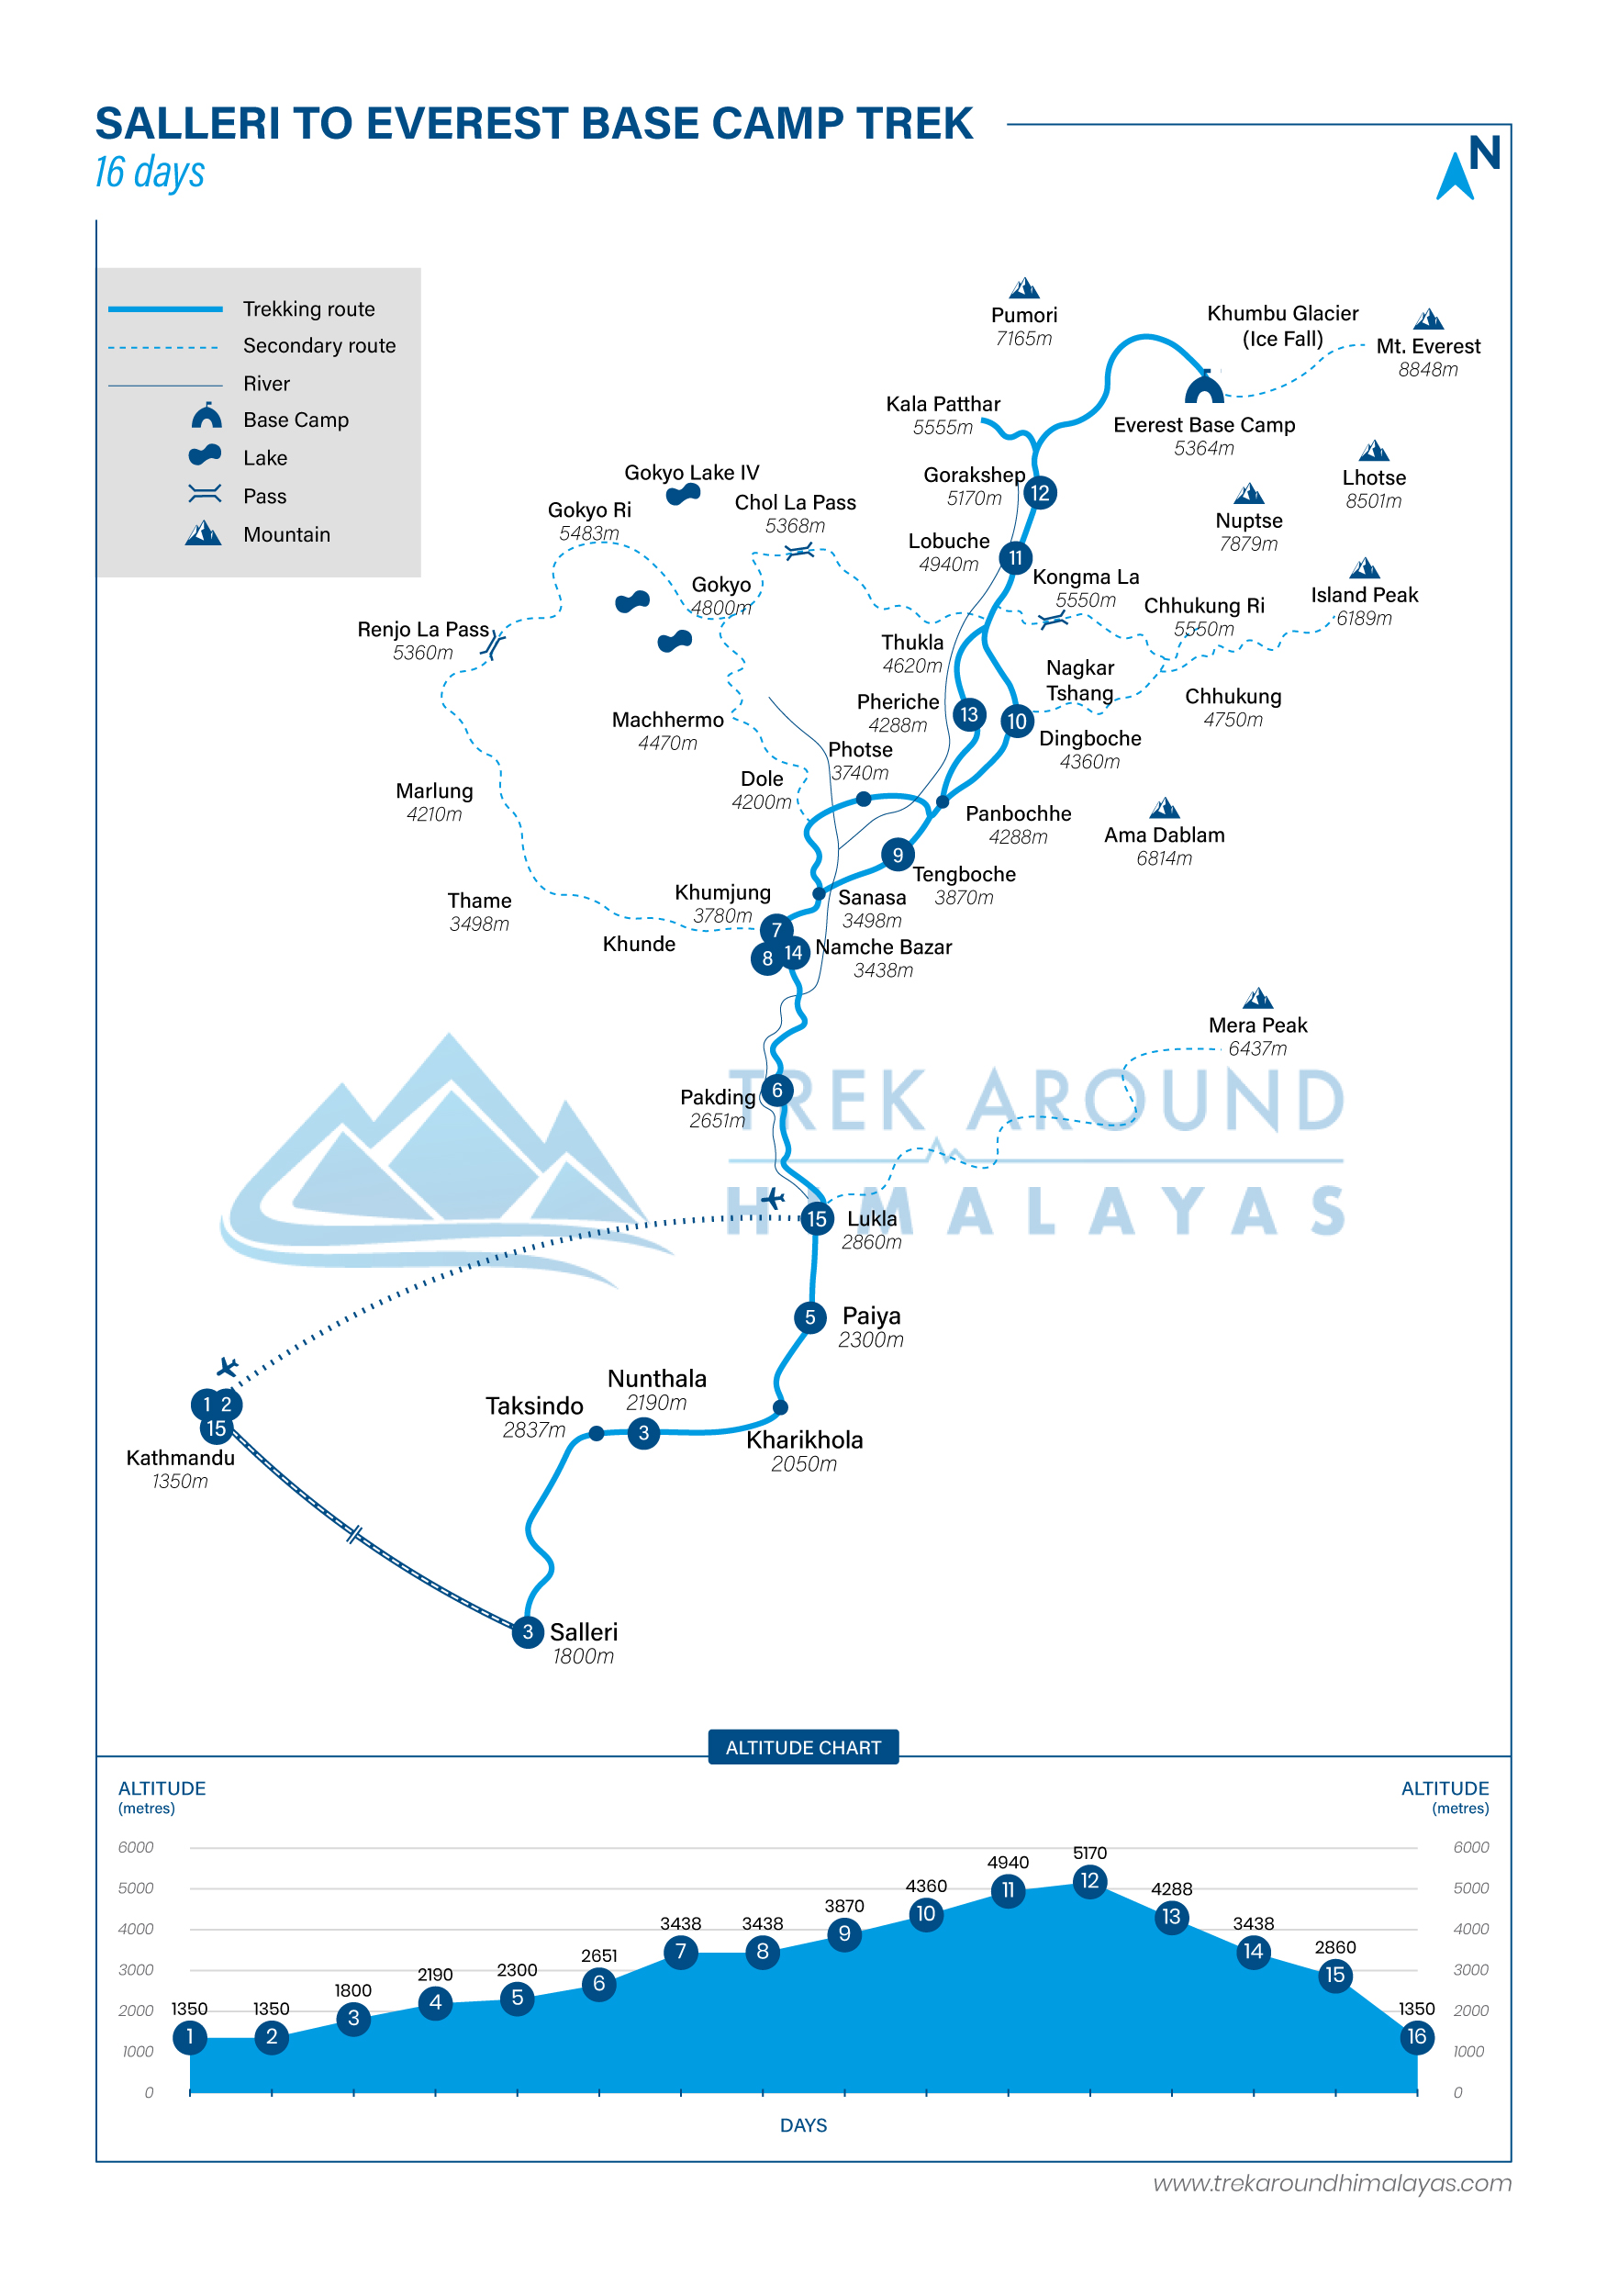 Route Map for Salleri to Everest Base Camp Trek | Adventure Altitude